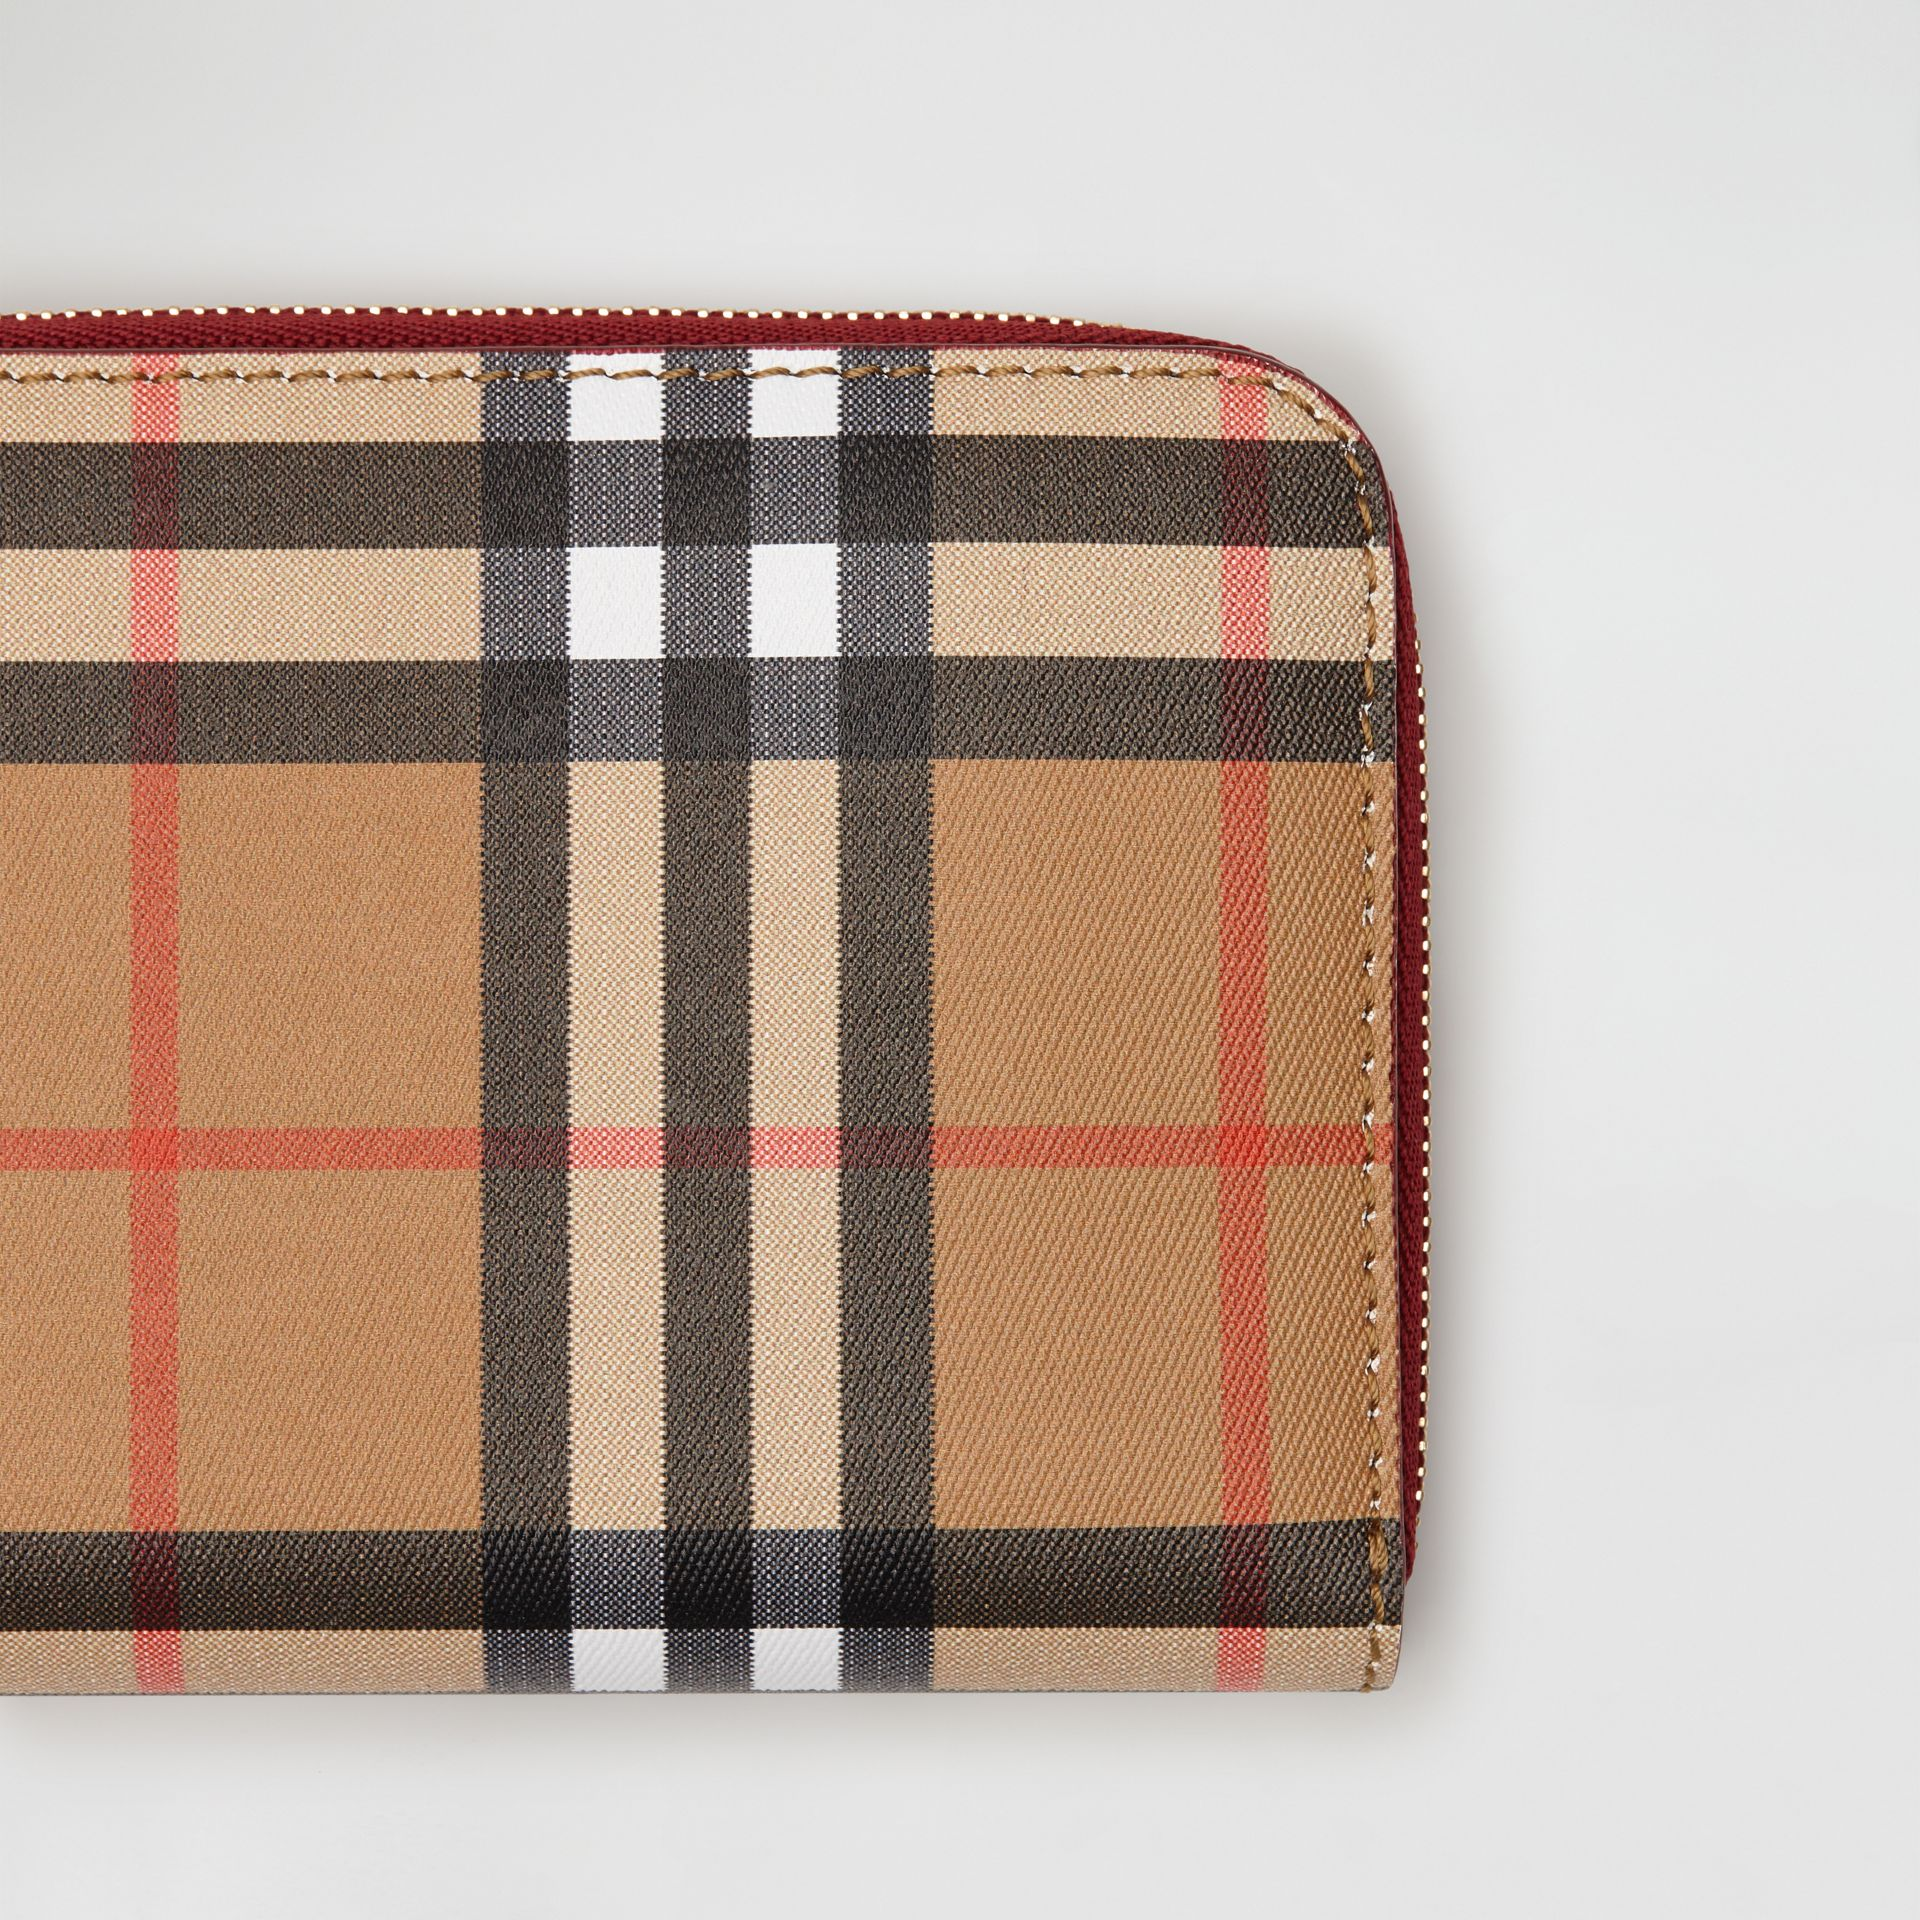 Vintage Check and Leather Ziparound Wallet in Crimson - Women | Burberry Canada - gallery image 1